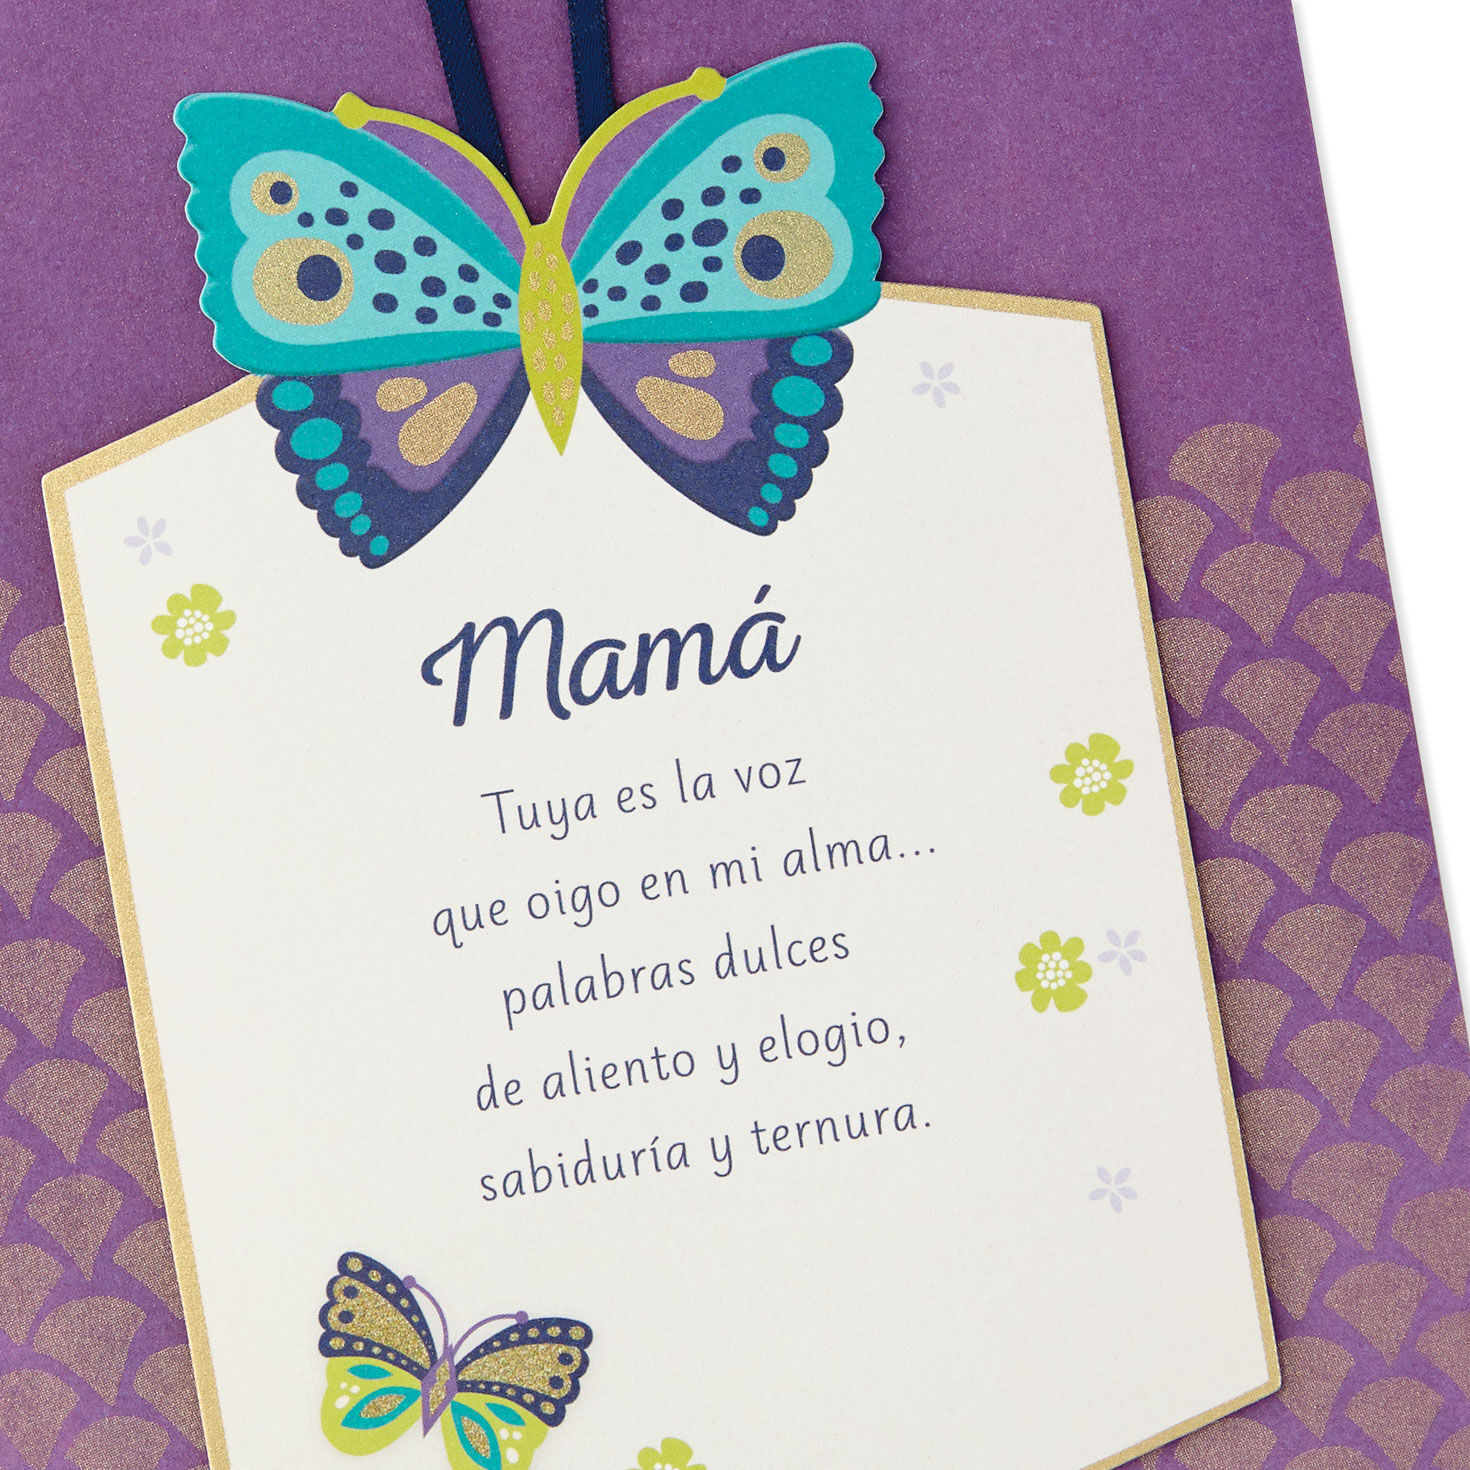 photograph about Spanish Birthday Cards Printable named Your Voice Spanish-Language Birthday Card for Mother